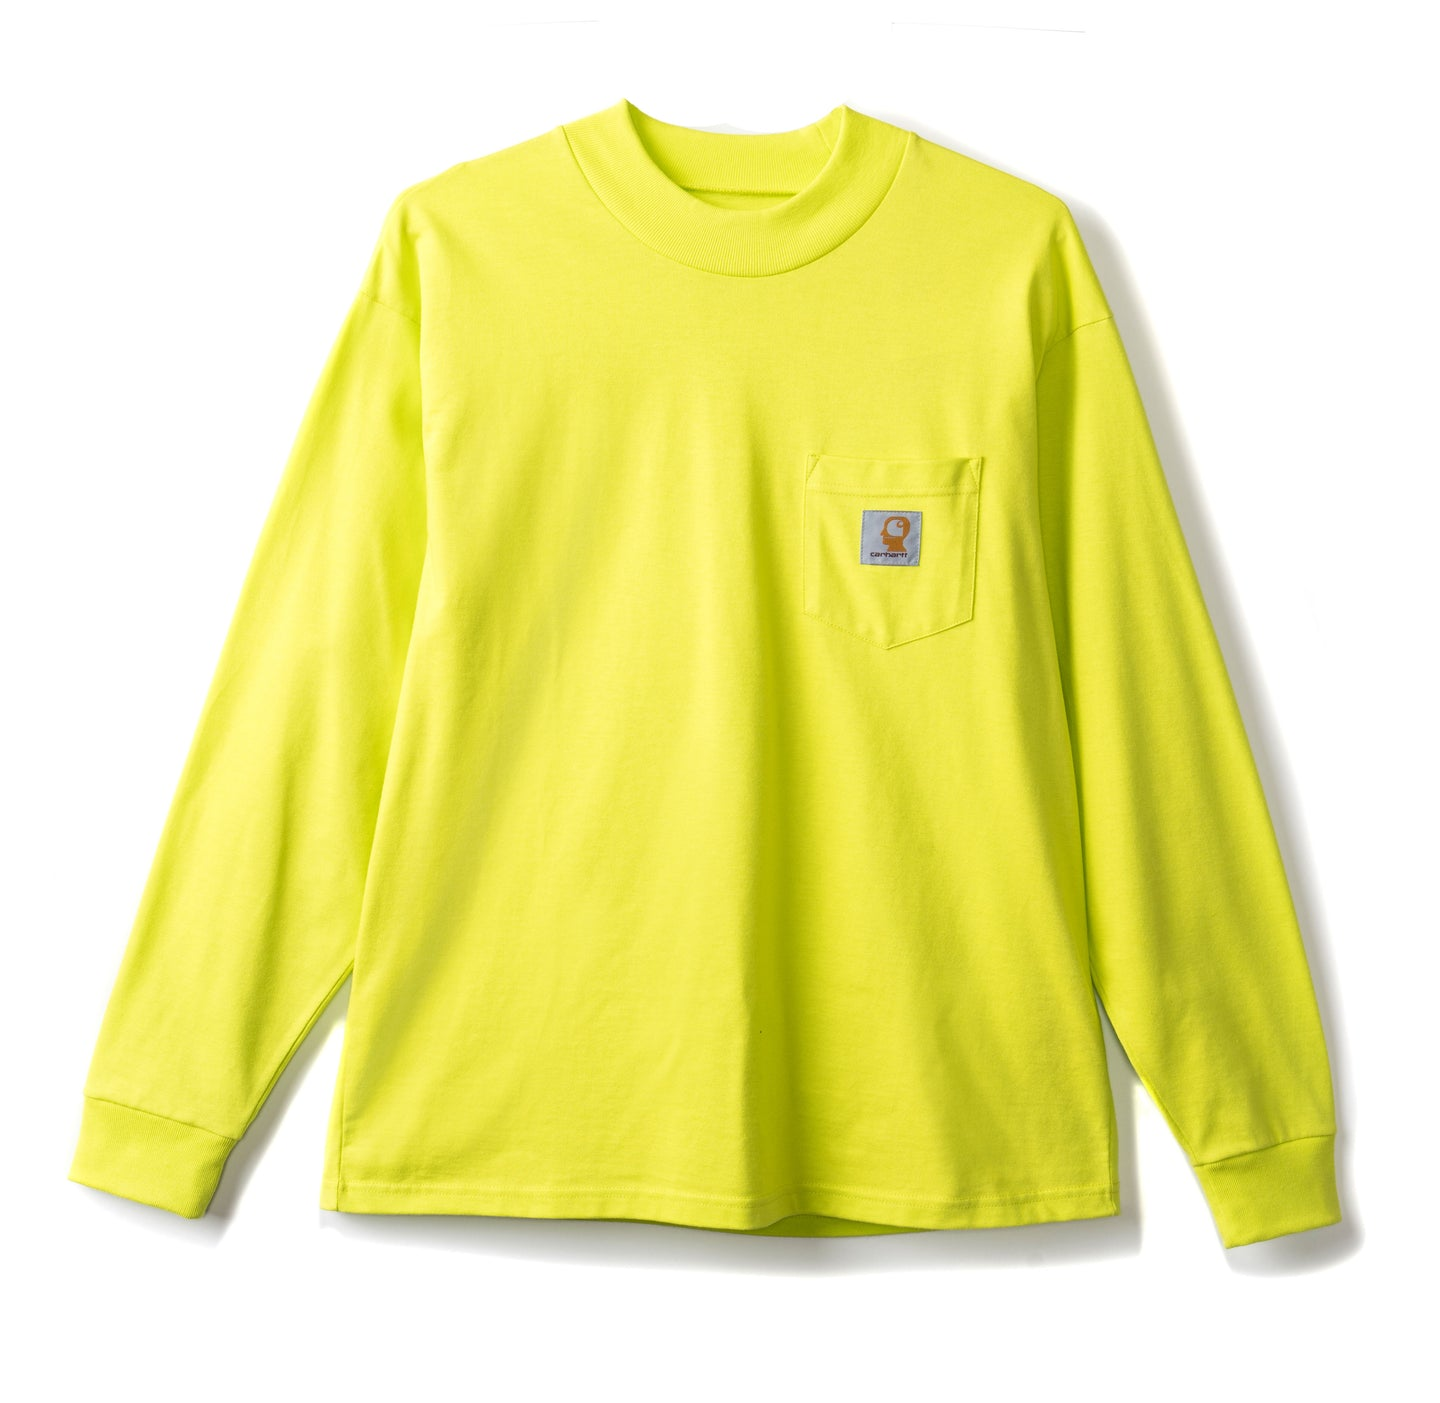 Brain Dead x Carhartt Swan Long Sleeve - Lime Green